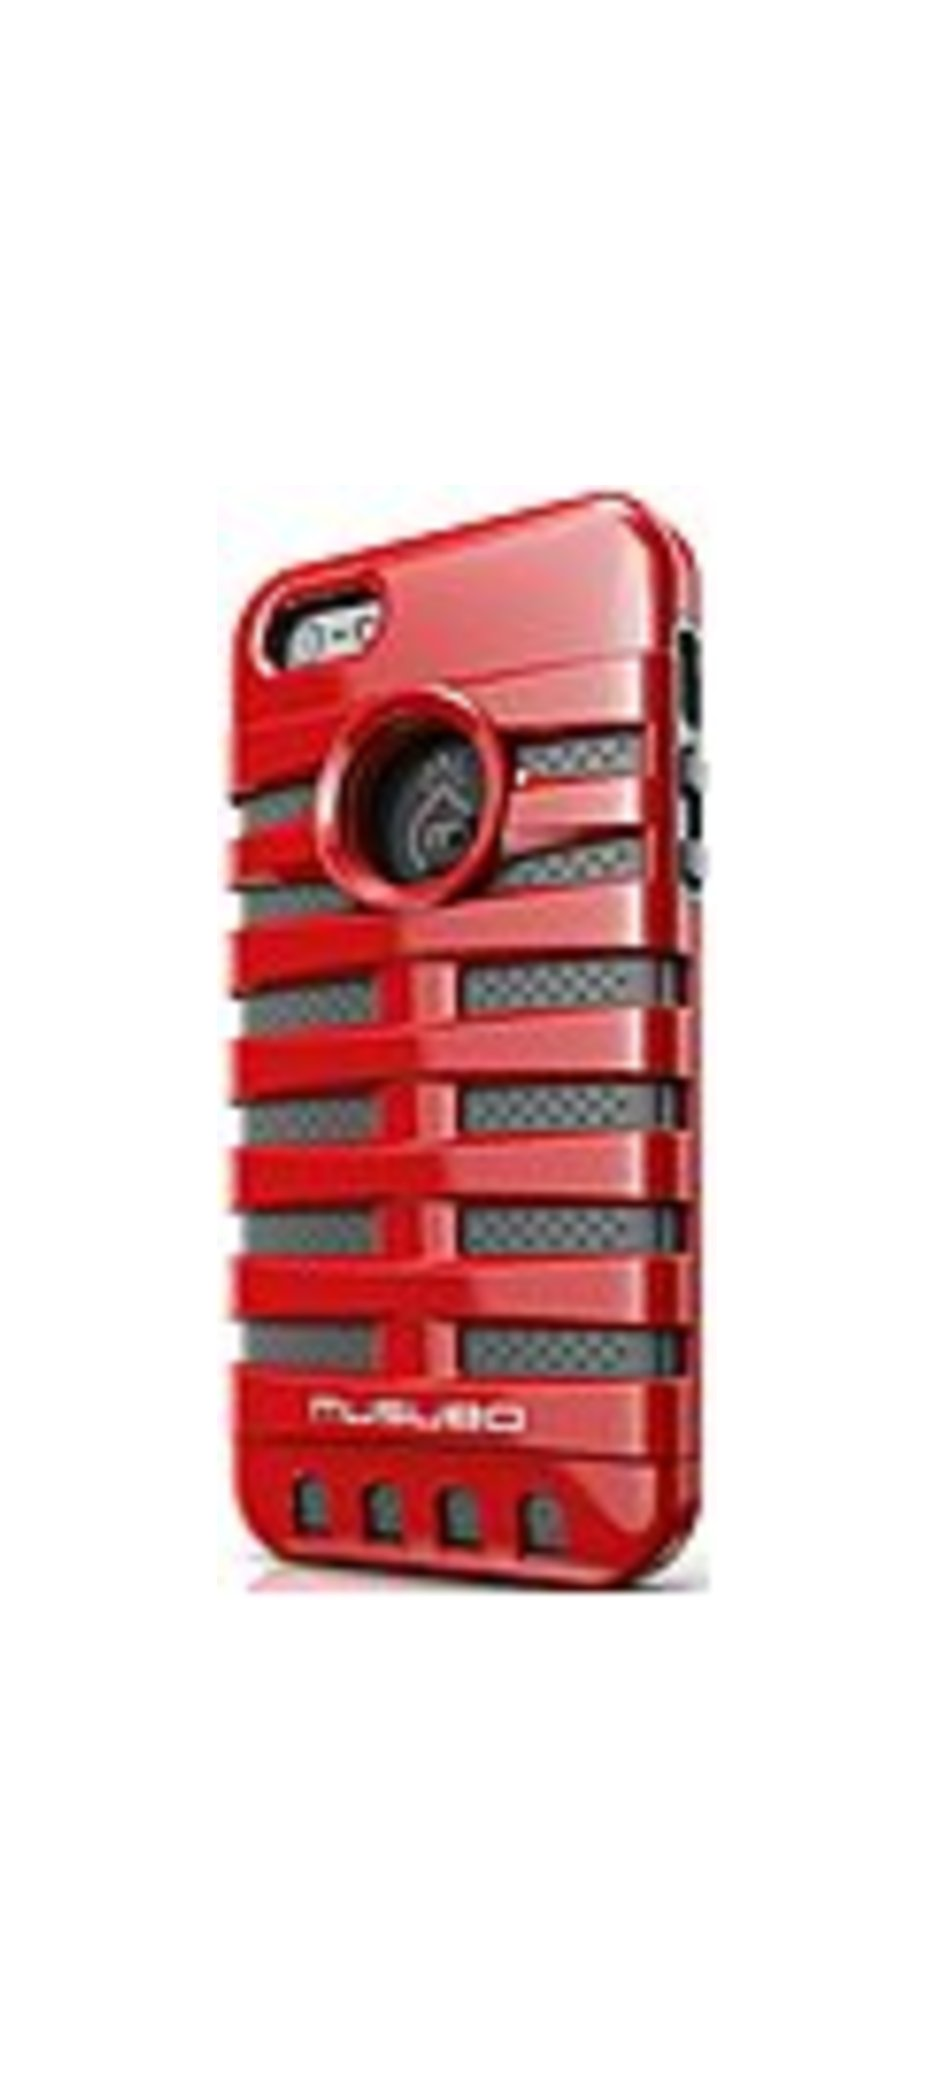 Smart It Musubo Retro Case For Iphone 5 - Iphone - Red - Silicone, Polycarbonate